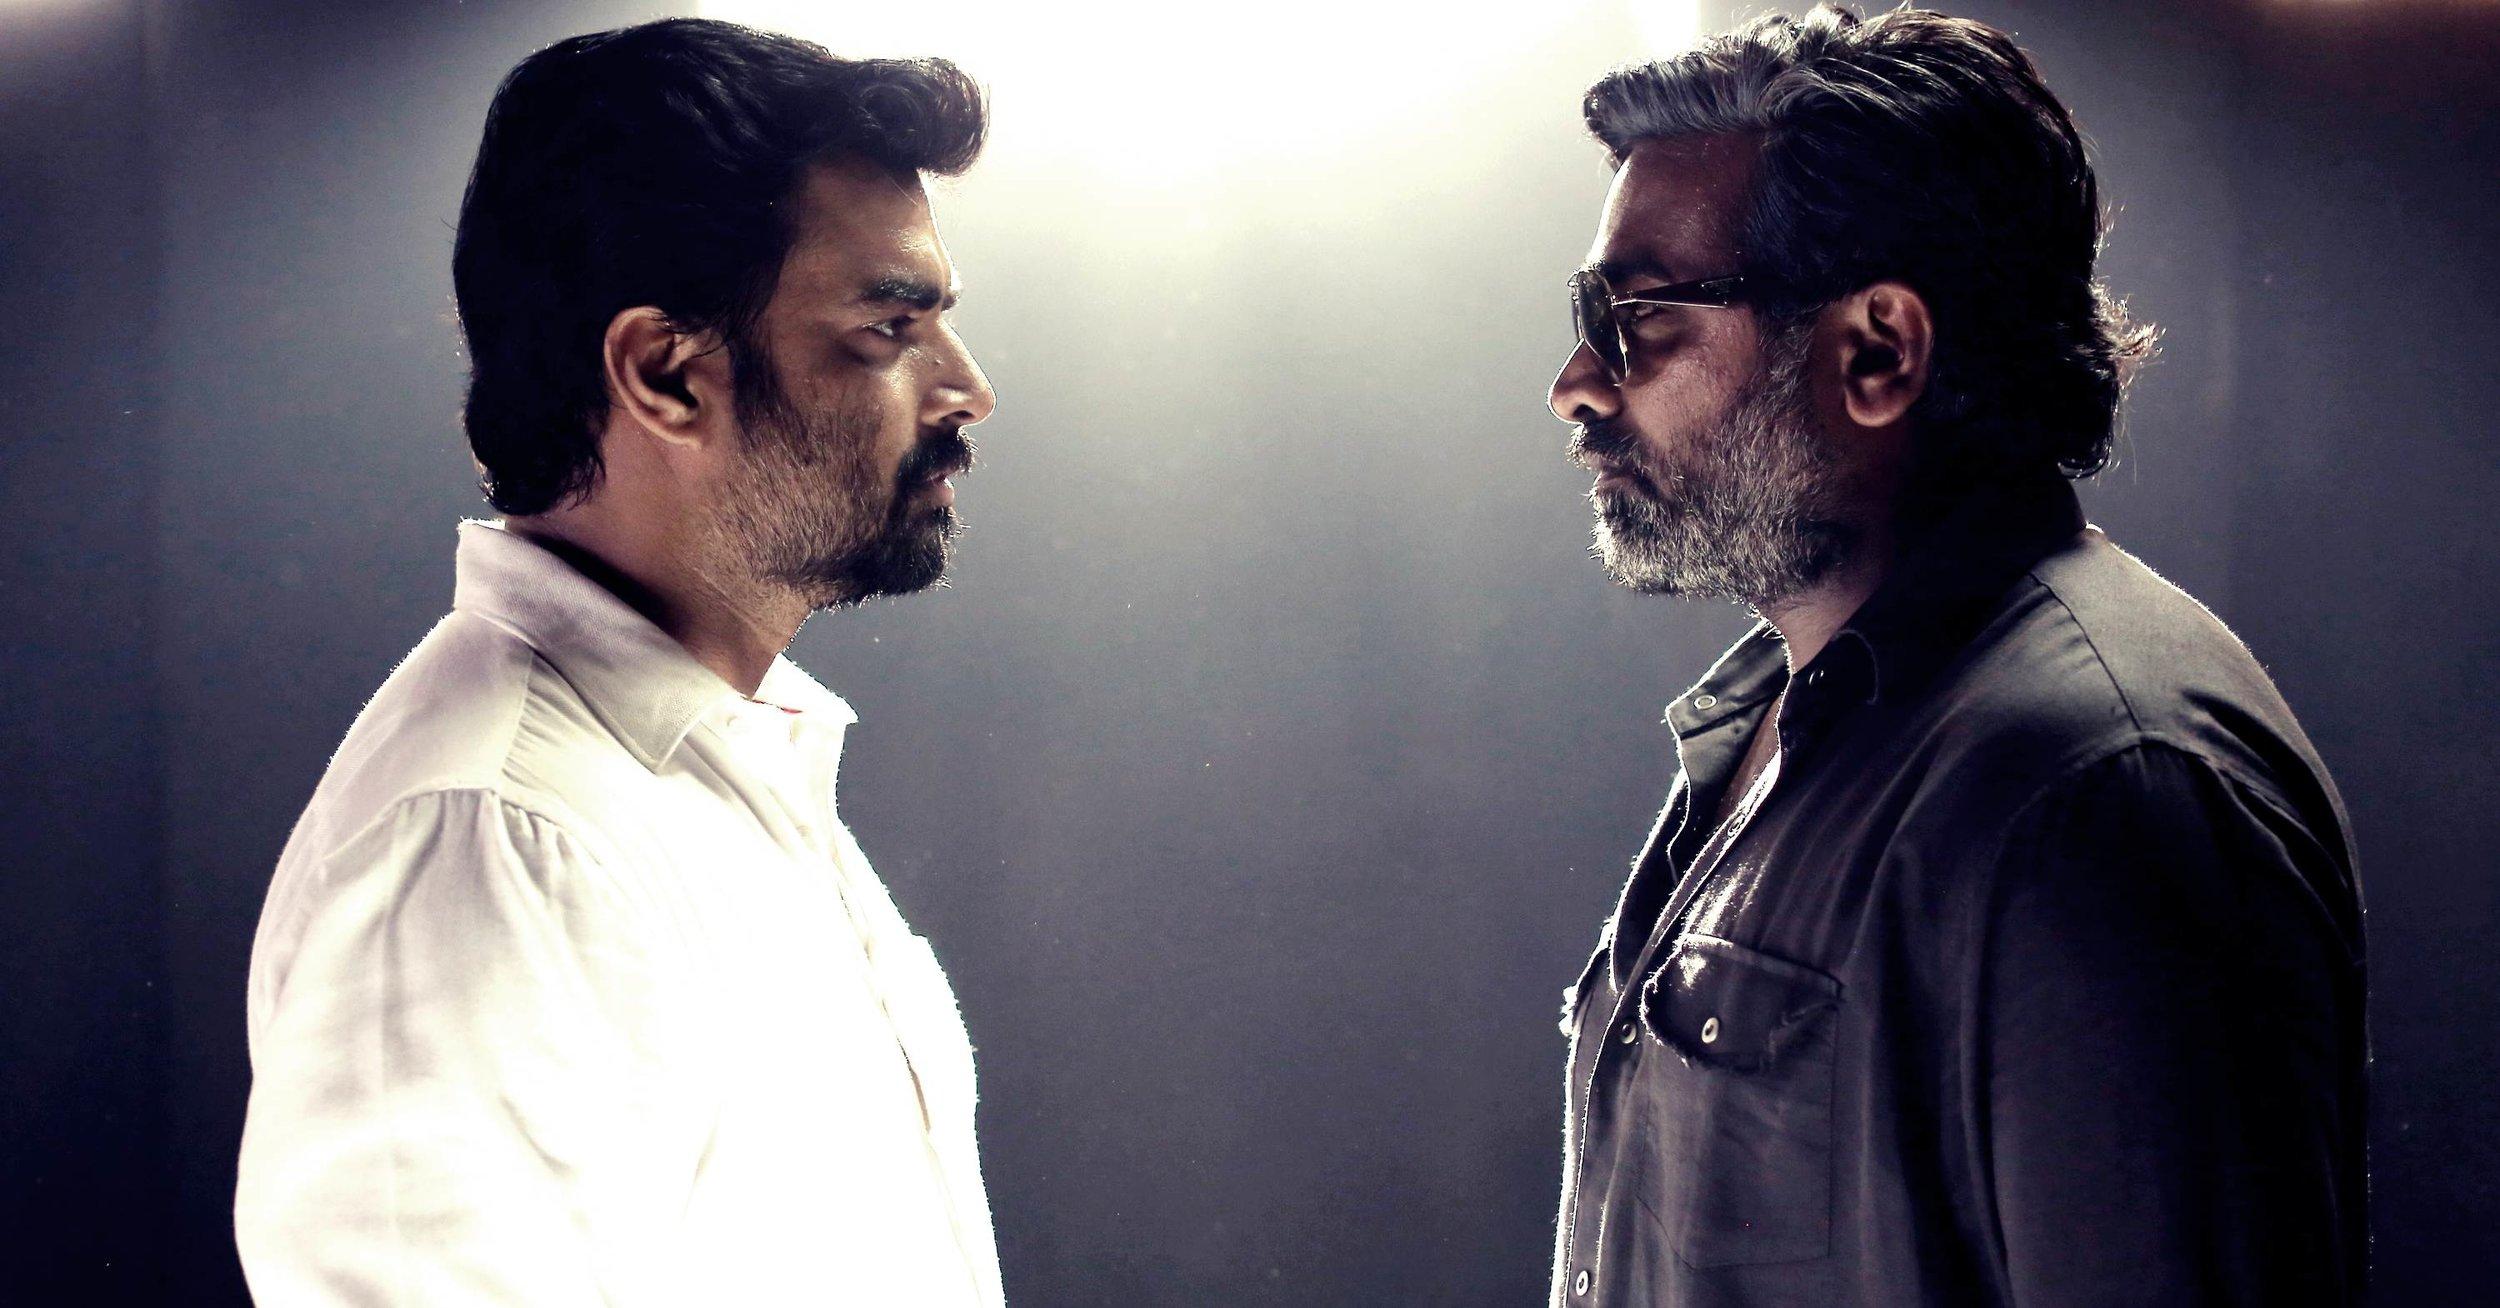 Vikram Vedha - The Anatomy of a Carefully Crafted Story